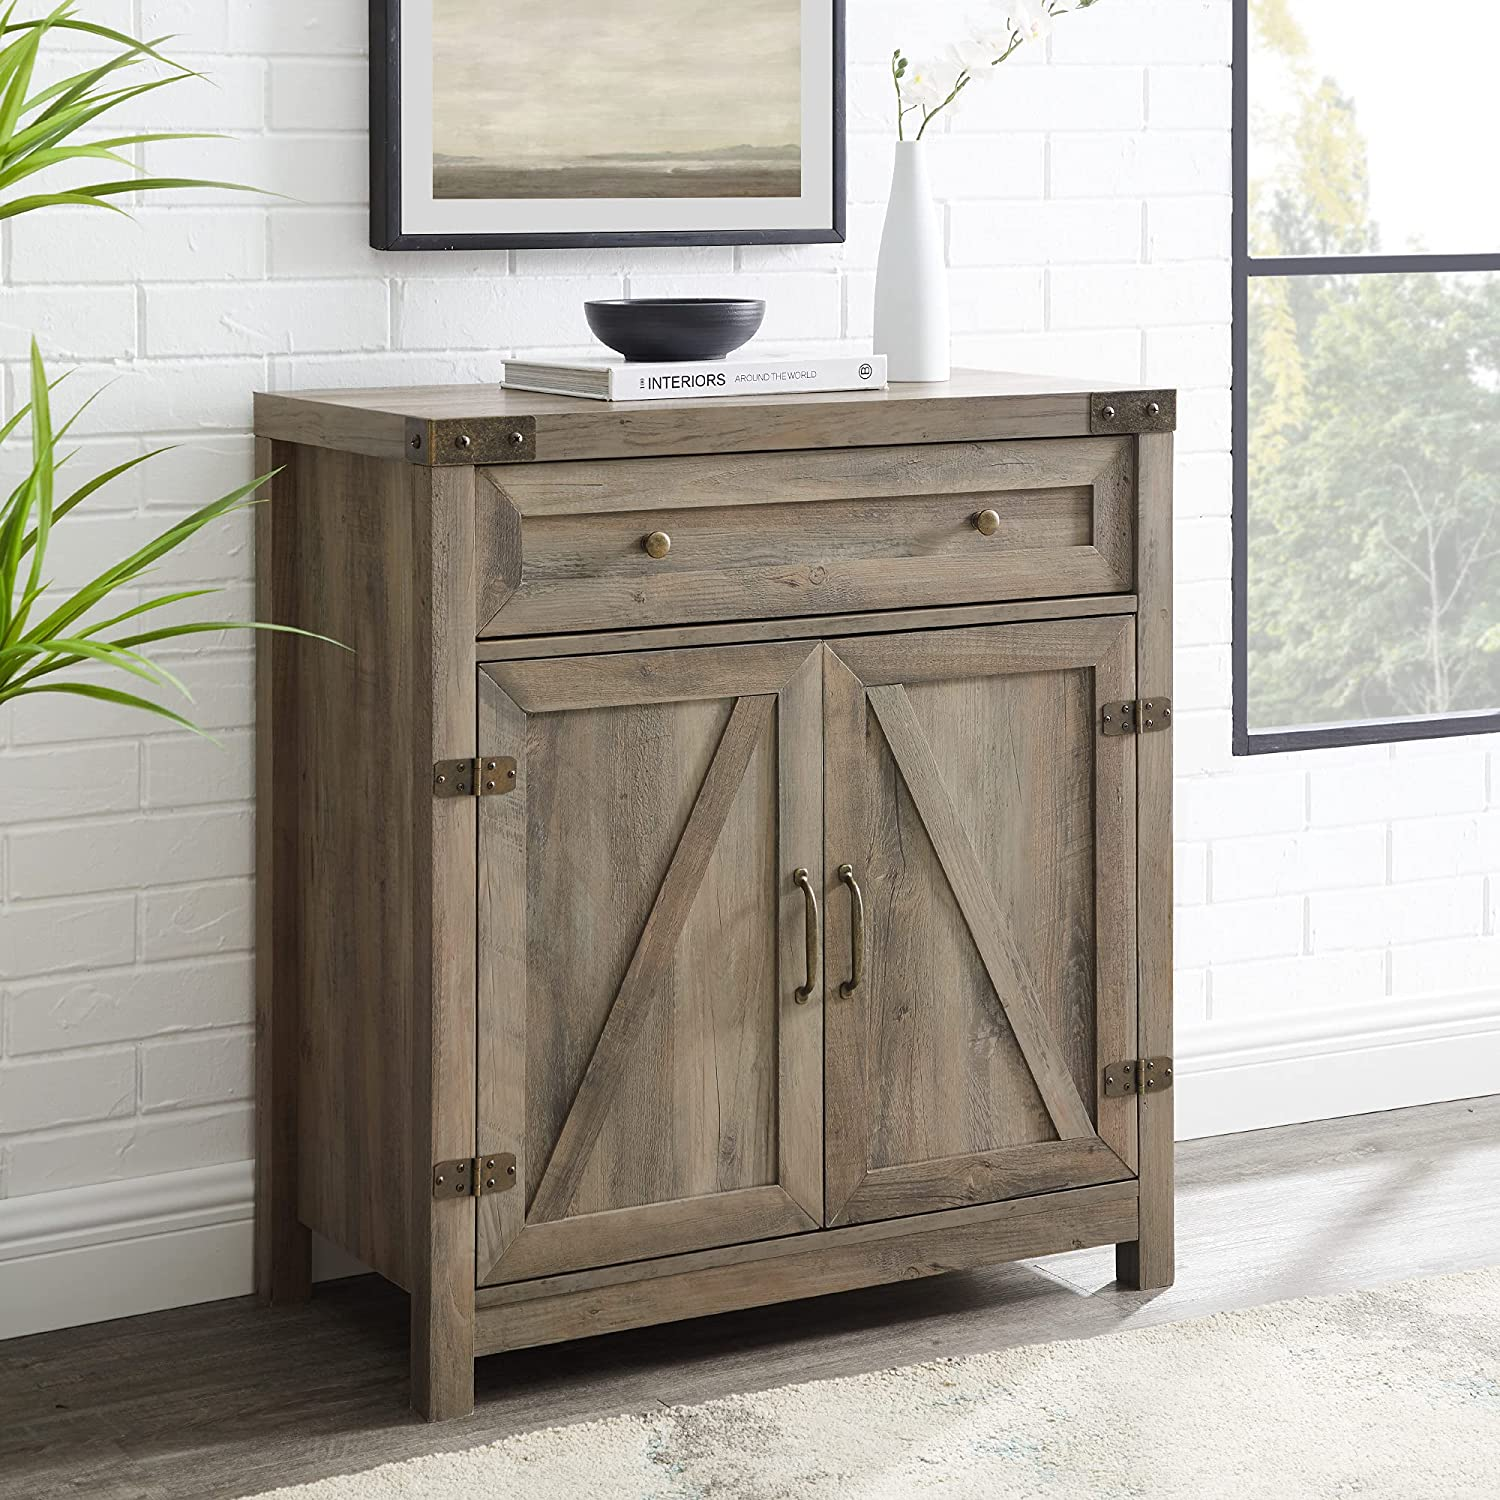 Modern Farmhouse Barn Door Cabinet Popular products Accent Grey Finally resale start Stone